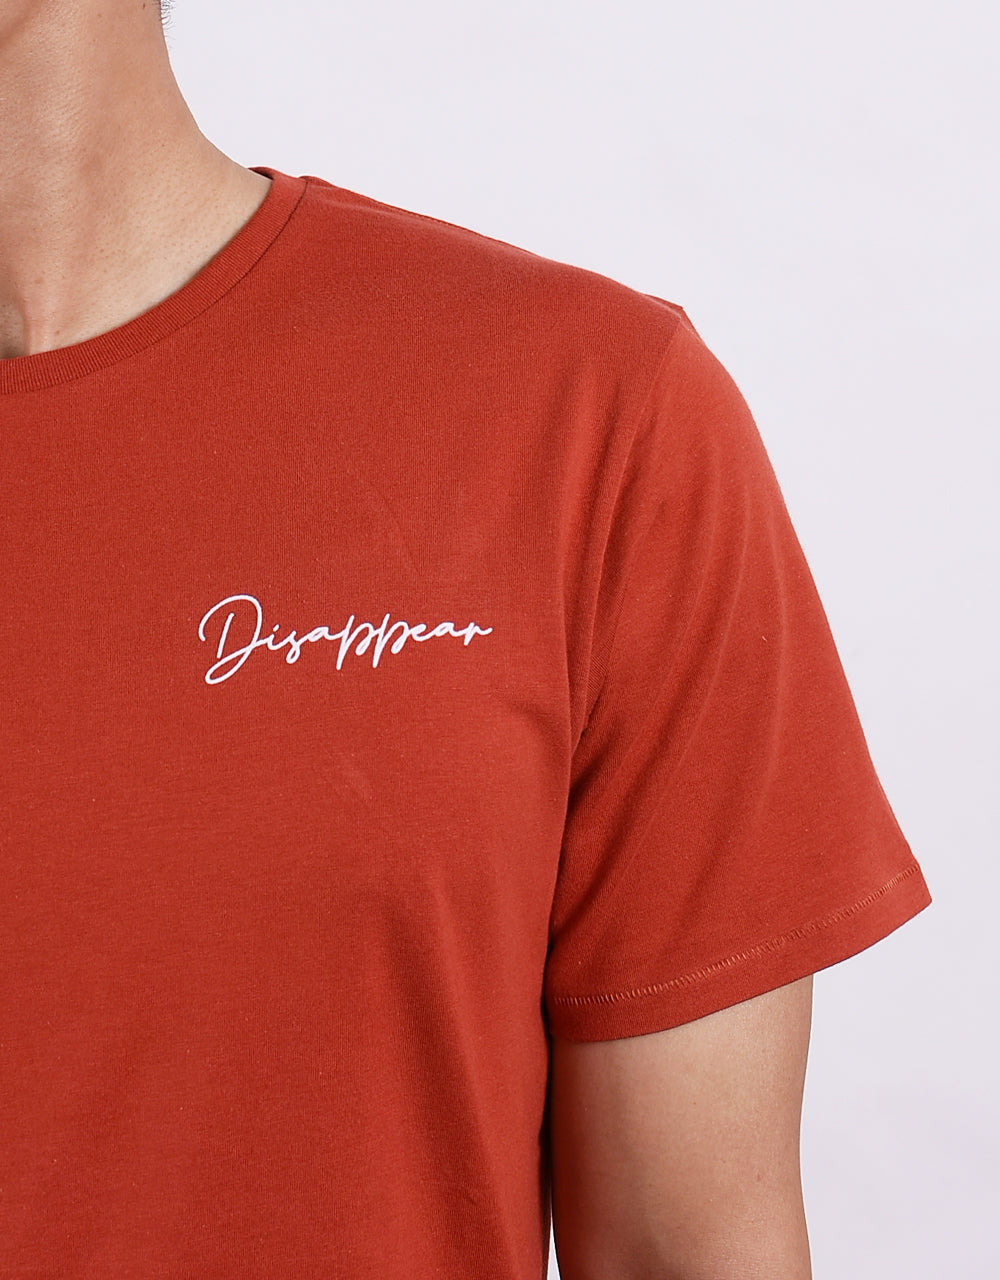 Diss 2 Graphic Tees